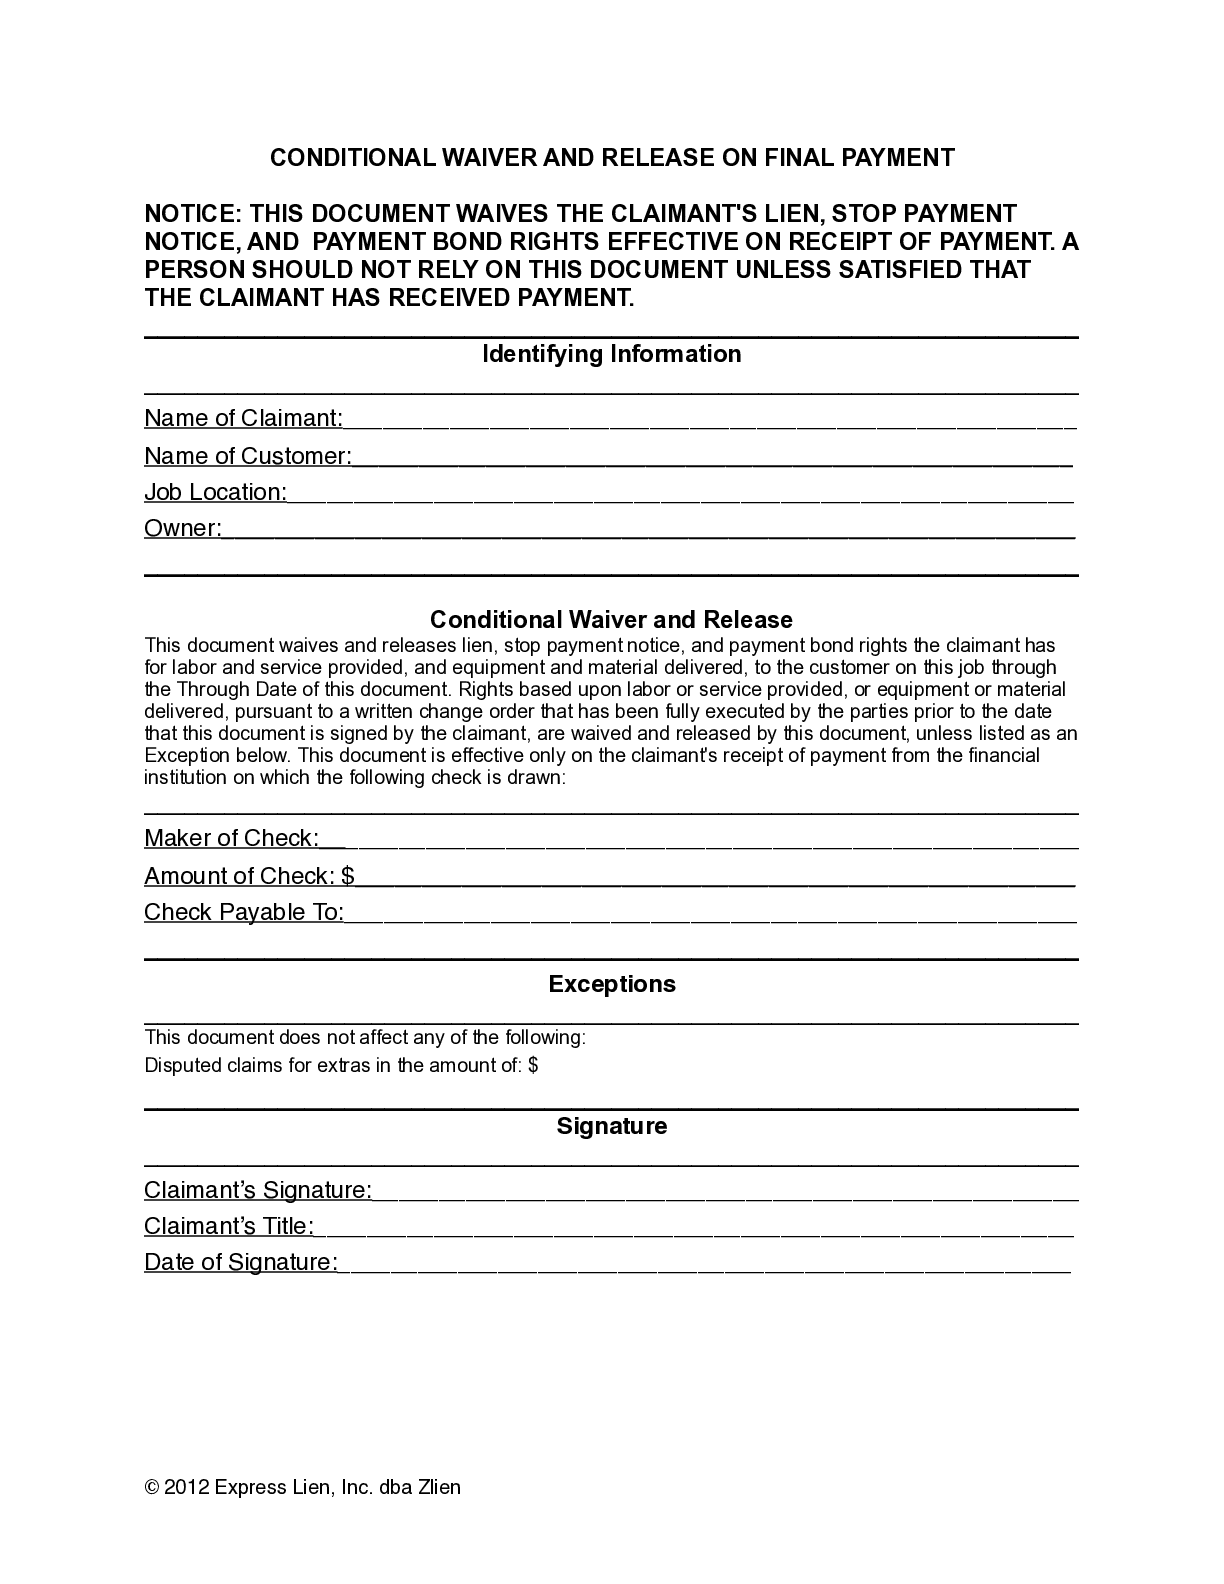 New Jersey Final Conditional Lien Waiver Form - free from